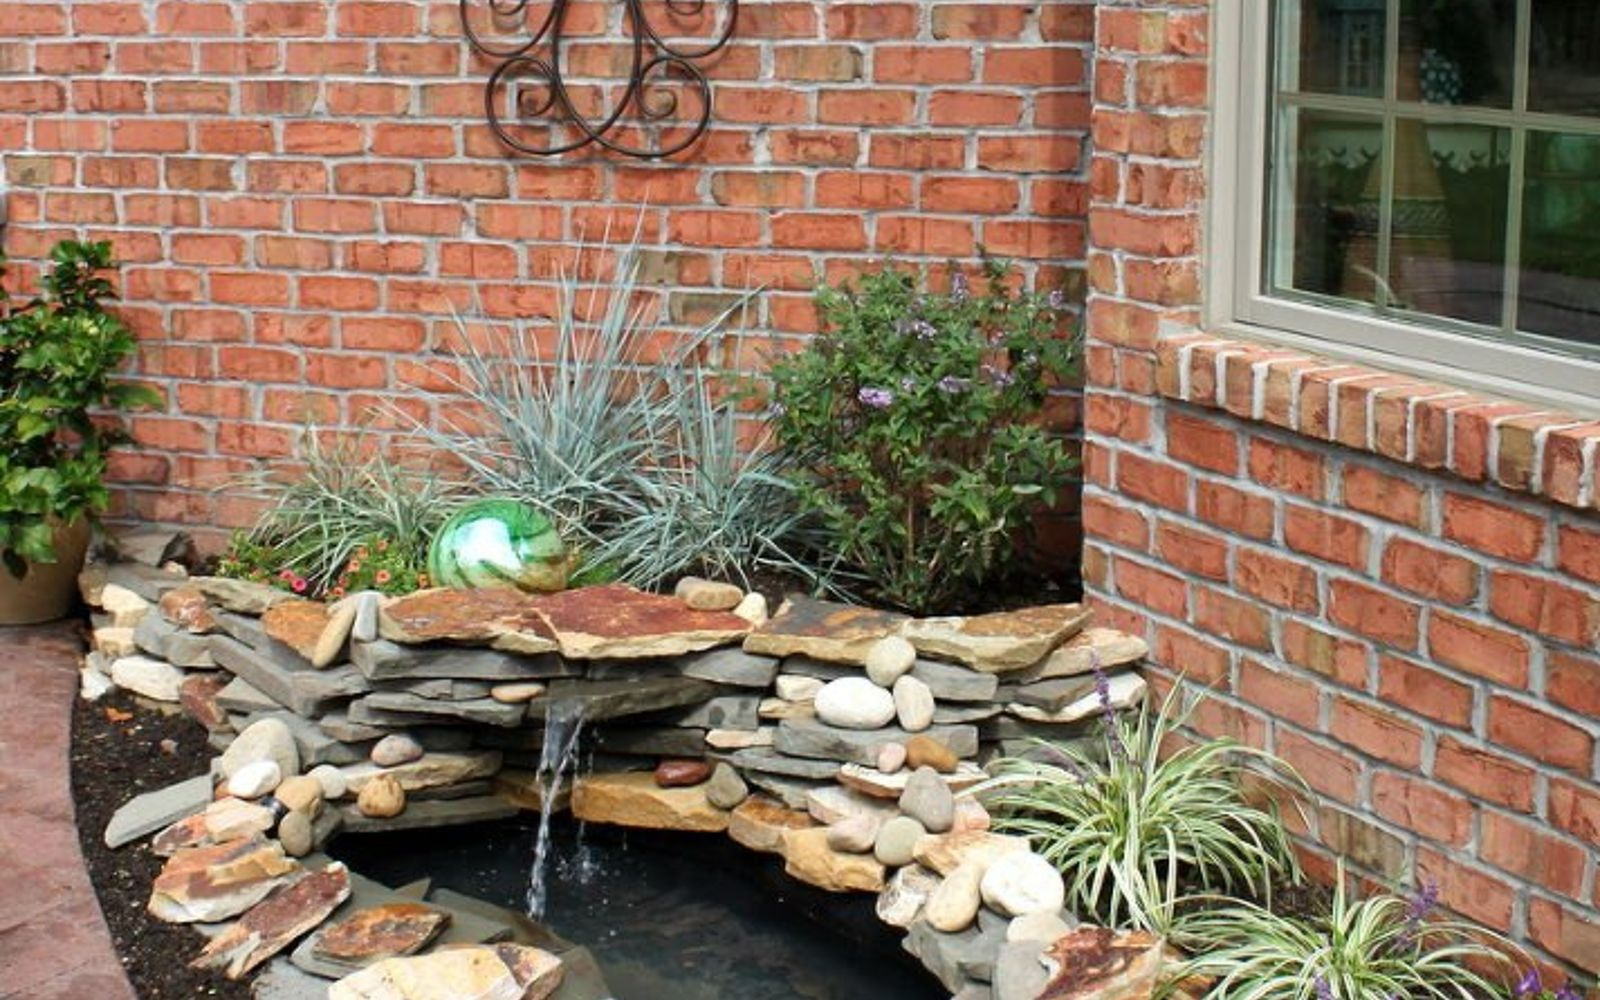 s 10 mini water features to add zen to your garden, outdoor living, ponds water features, Put a tiny waterfall pond beside your door